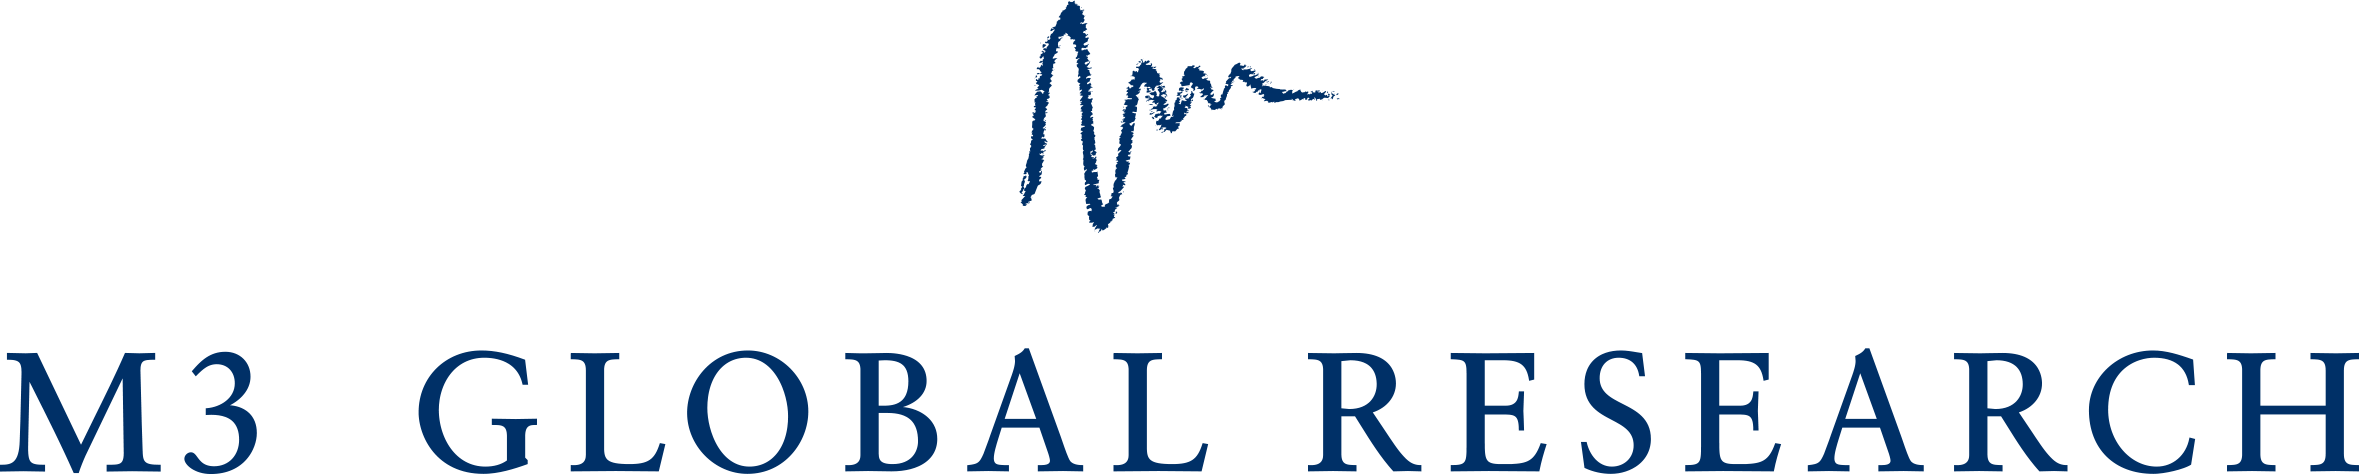 M3 Global Research Logo